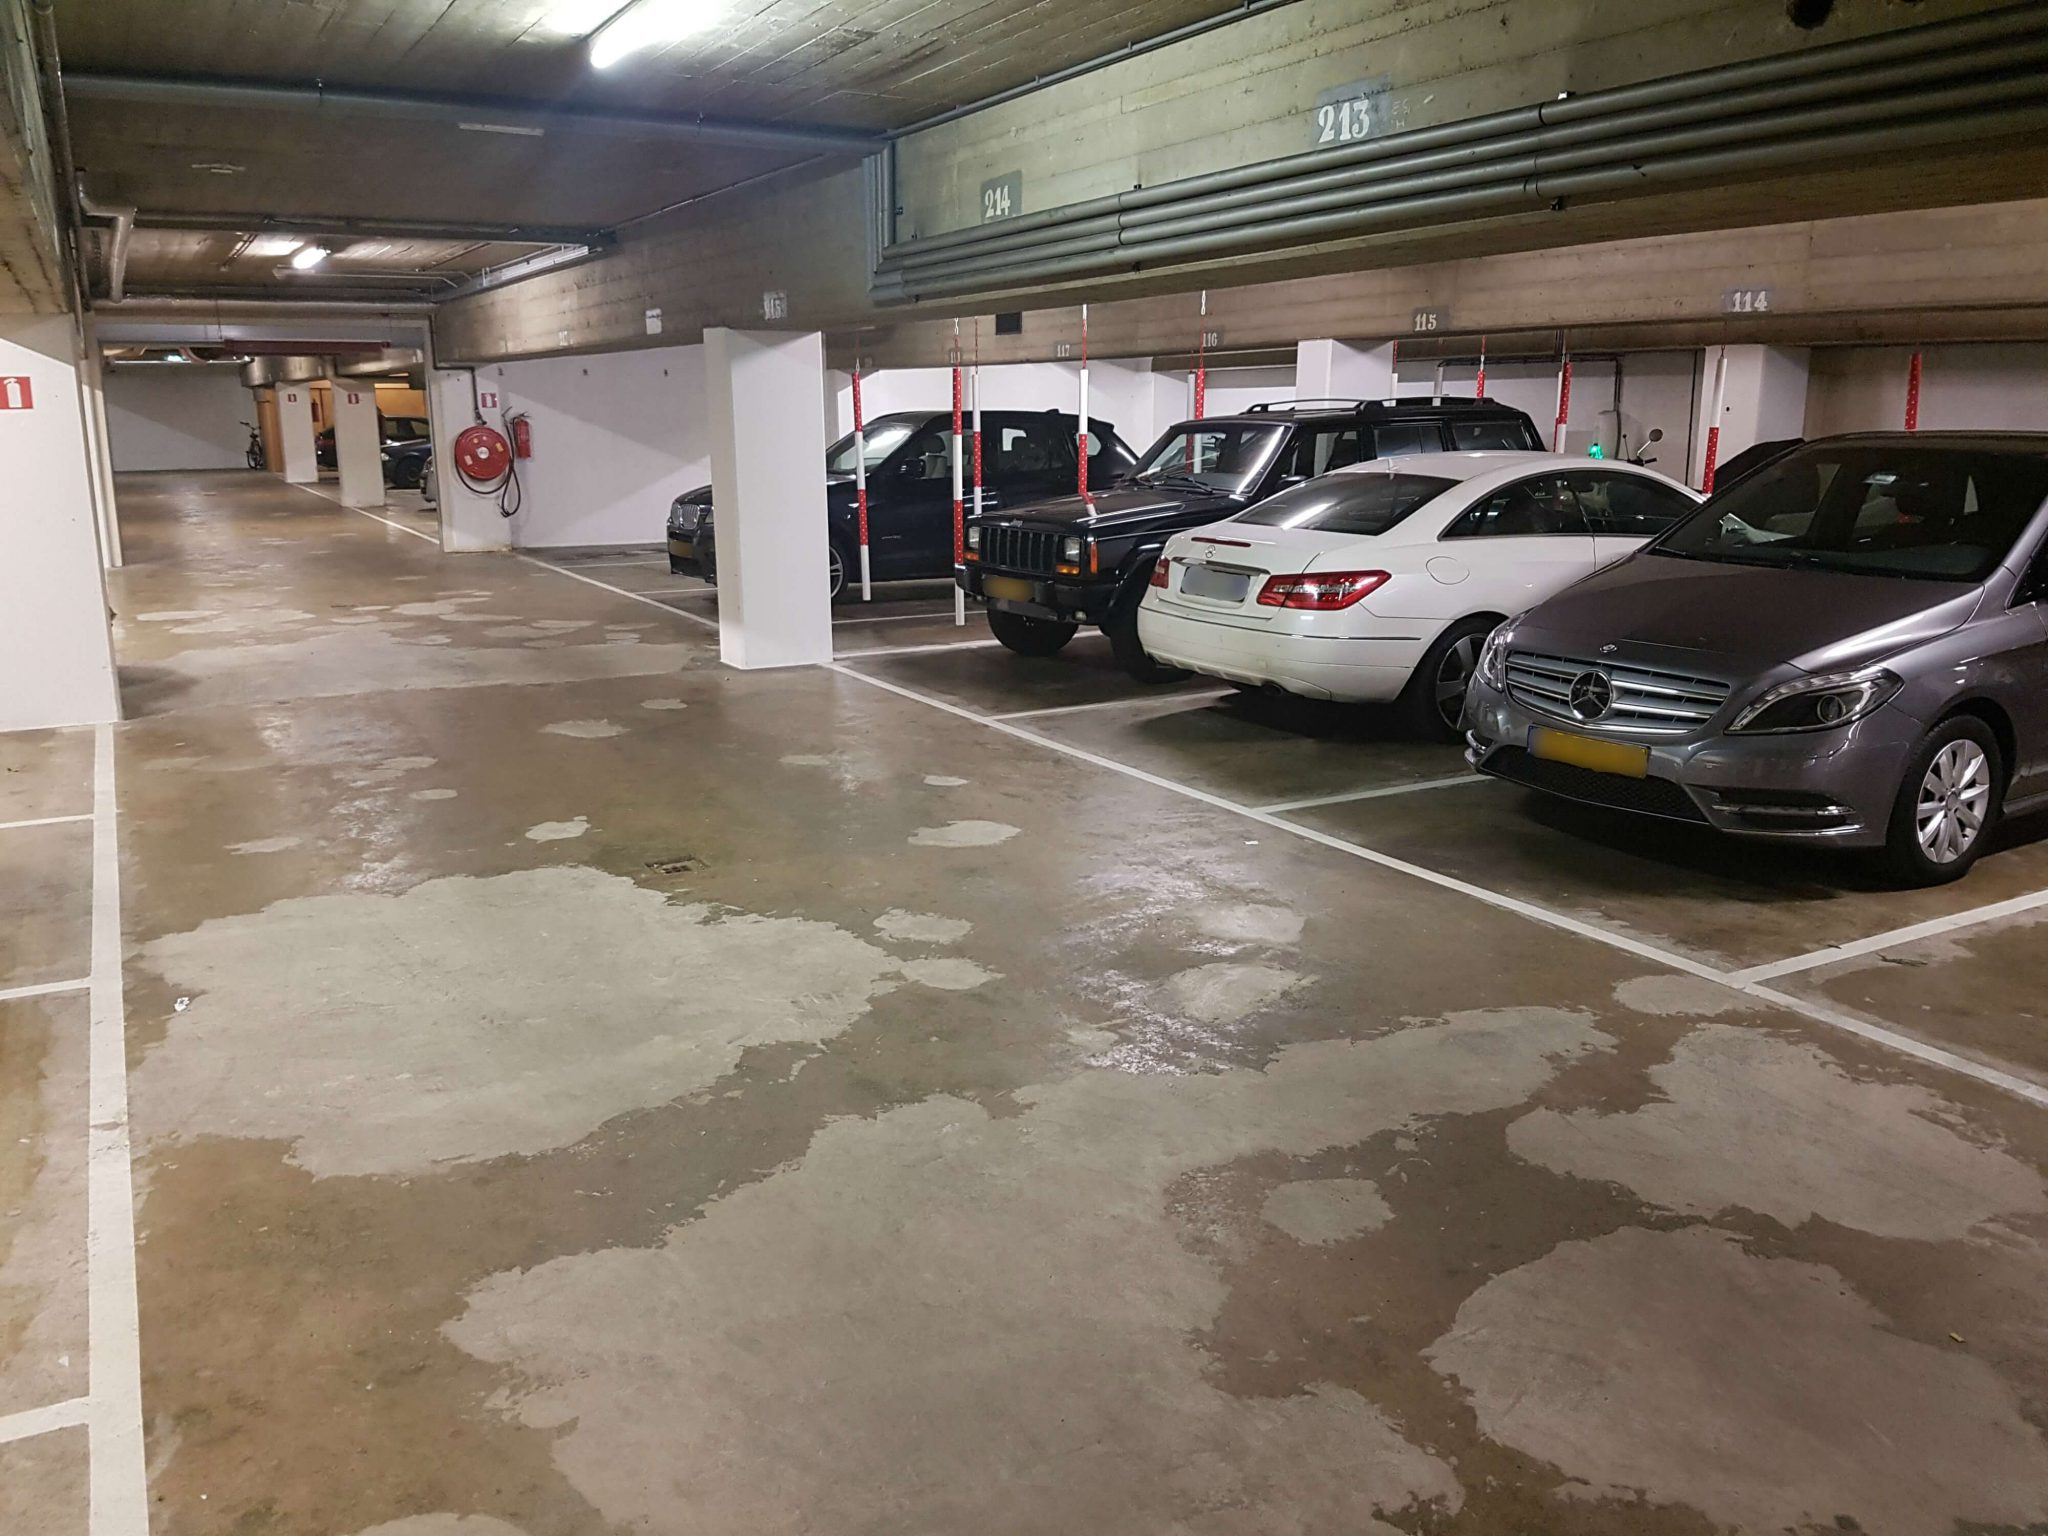 Peugeot Garage Amsterdam : Pictures parking amsterdam middenmeer